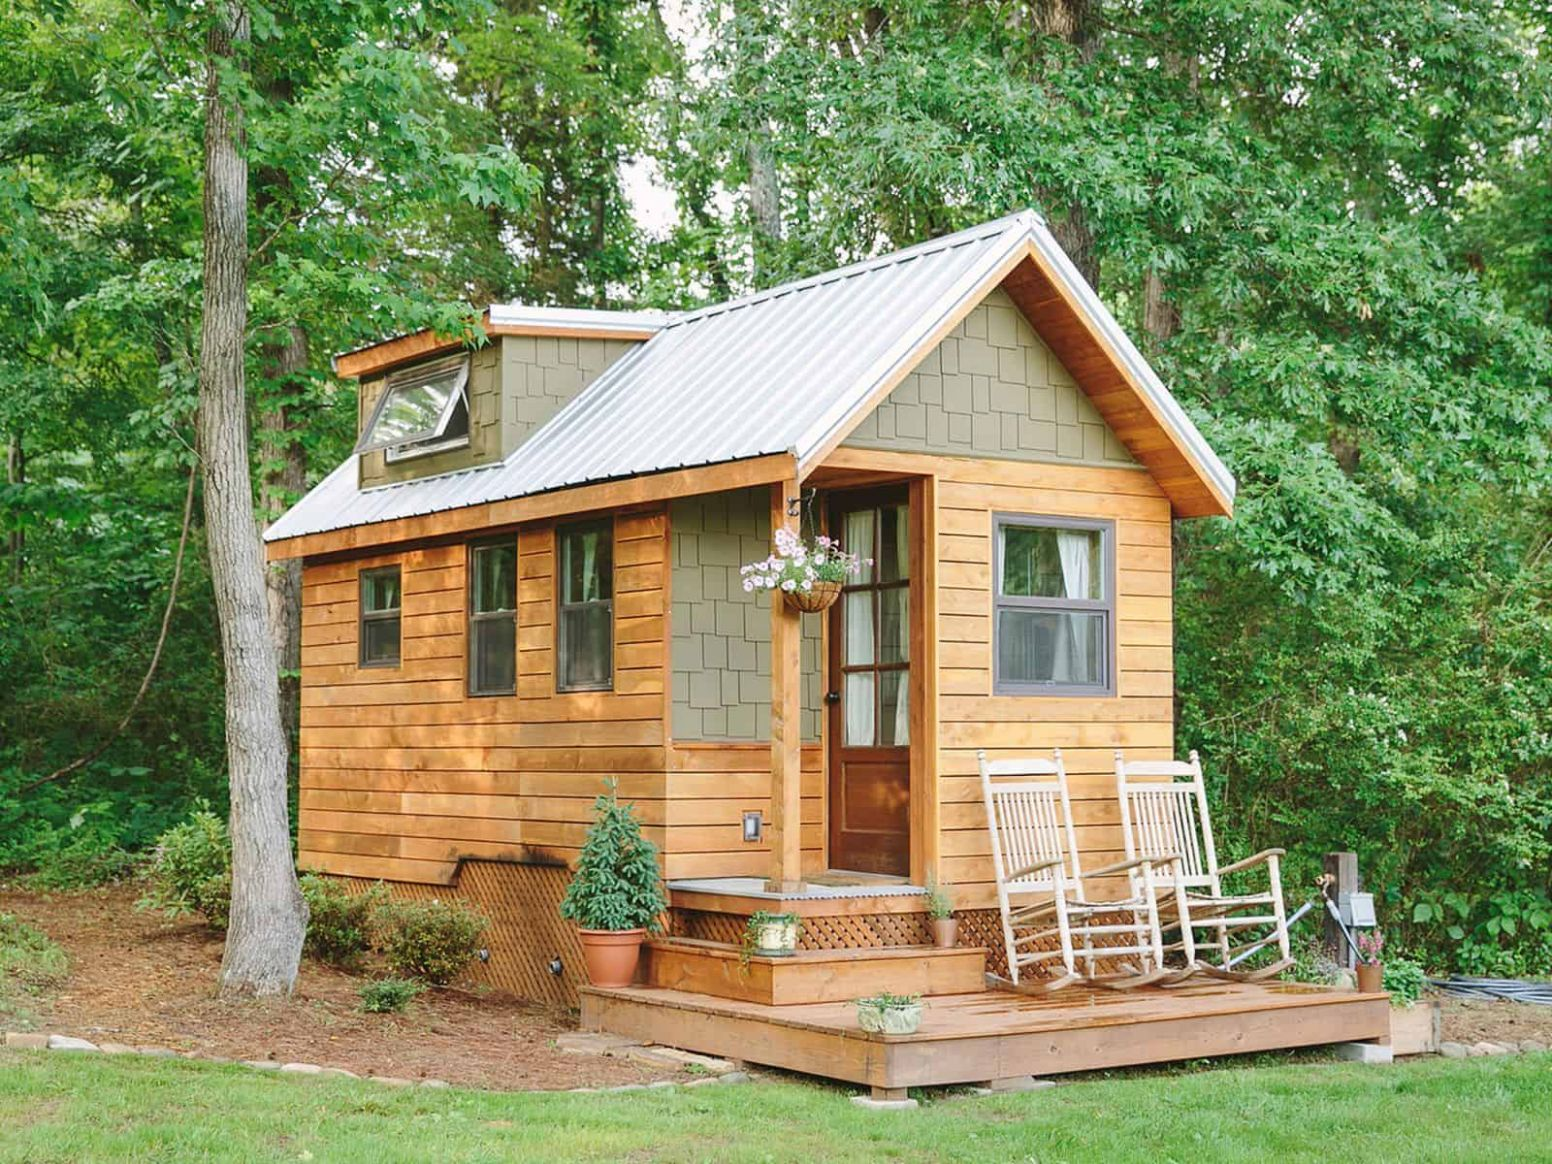 Extremely Tiny Homes: Minimalistic Living in Style - tiny house cottages